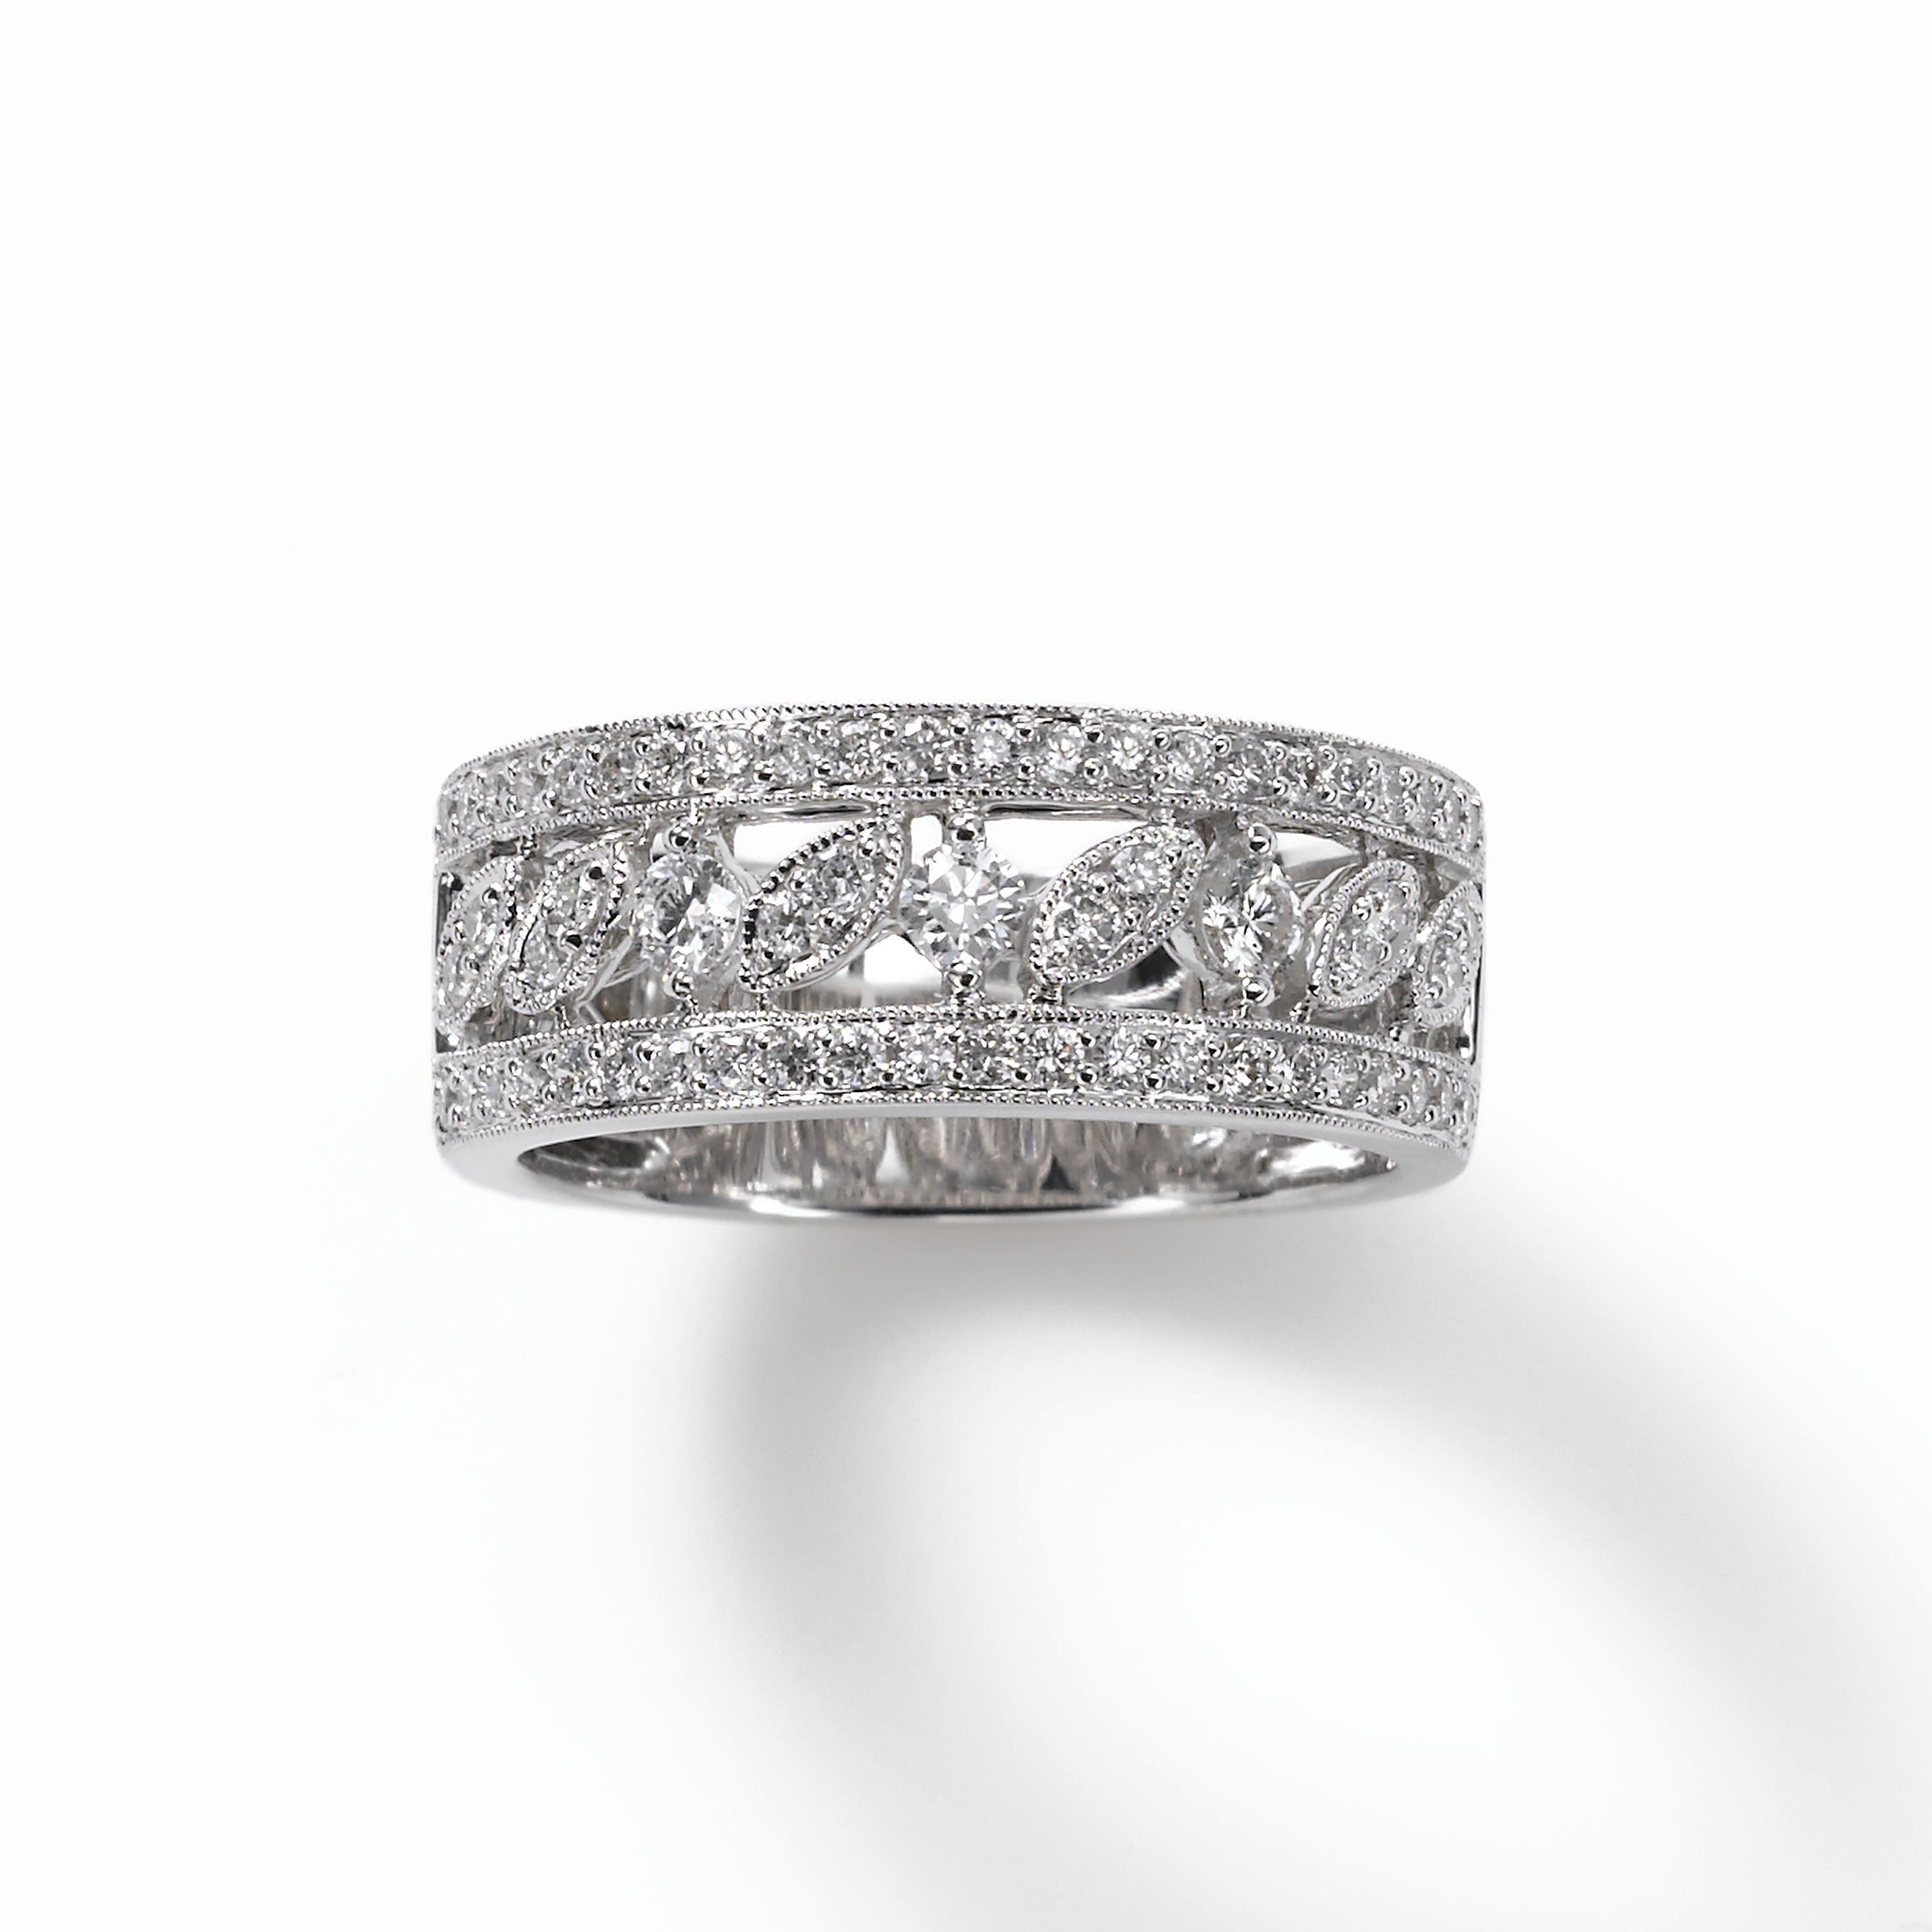 Wide Vintage Design Diamond Band, .65 Carat, 18K White Gold